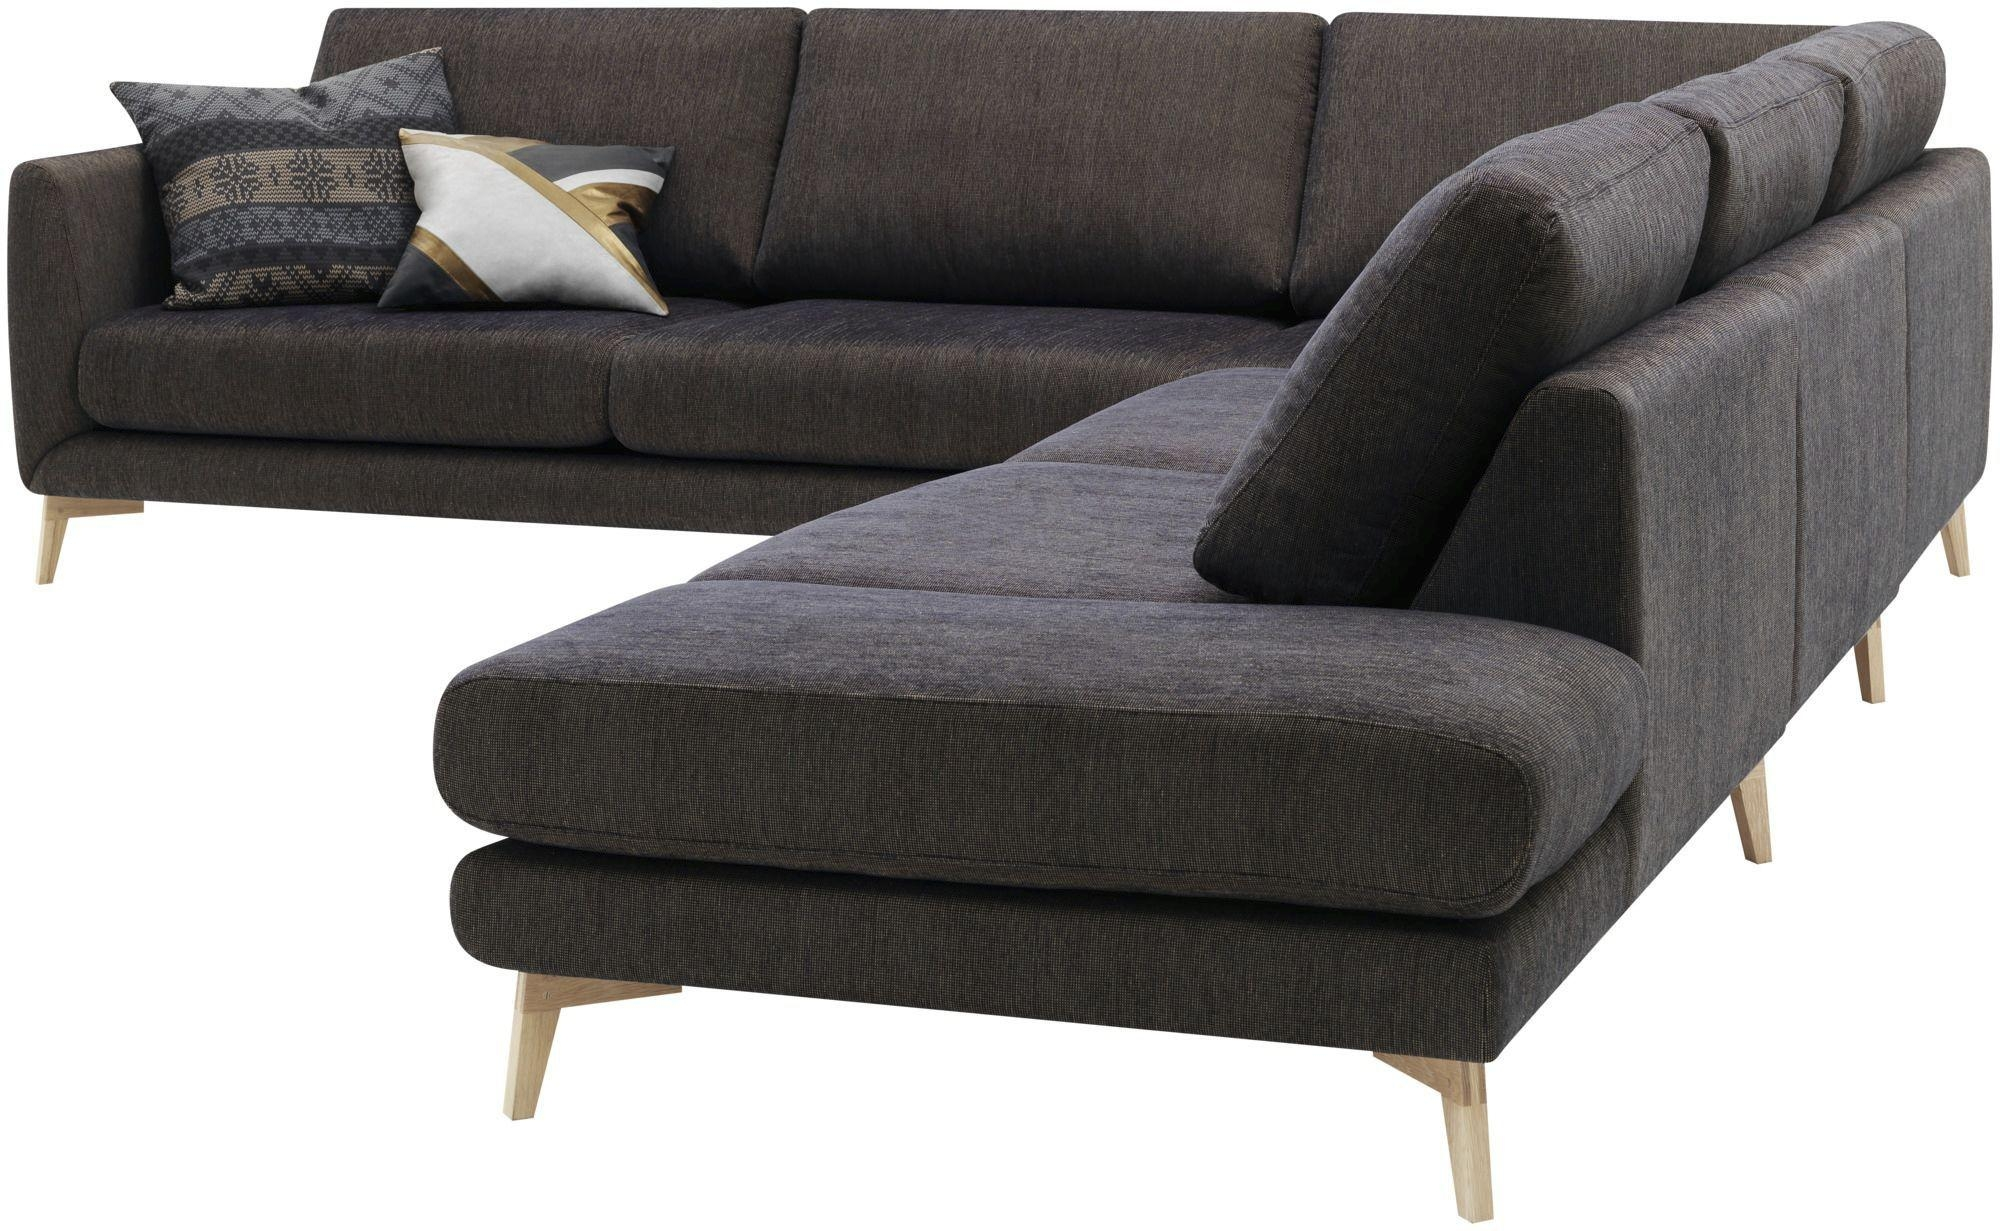 Corner Sofa / Modular / Contemporary / Leather – Fargoanders Inside Modular Corner Sofas (View 12 of 20)